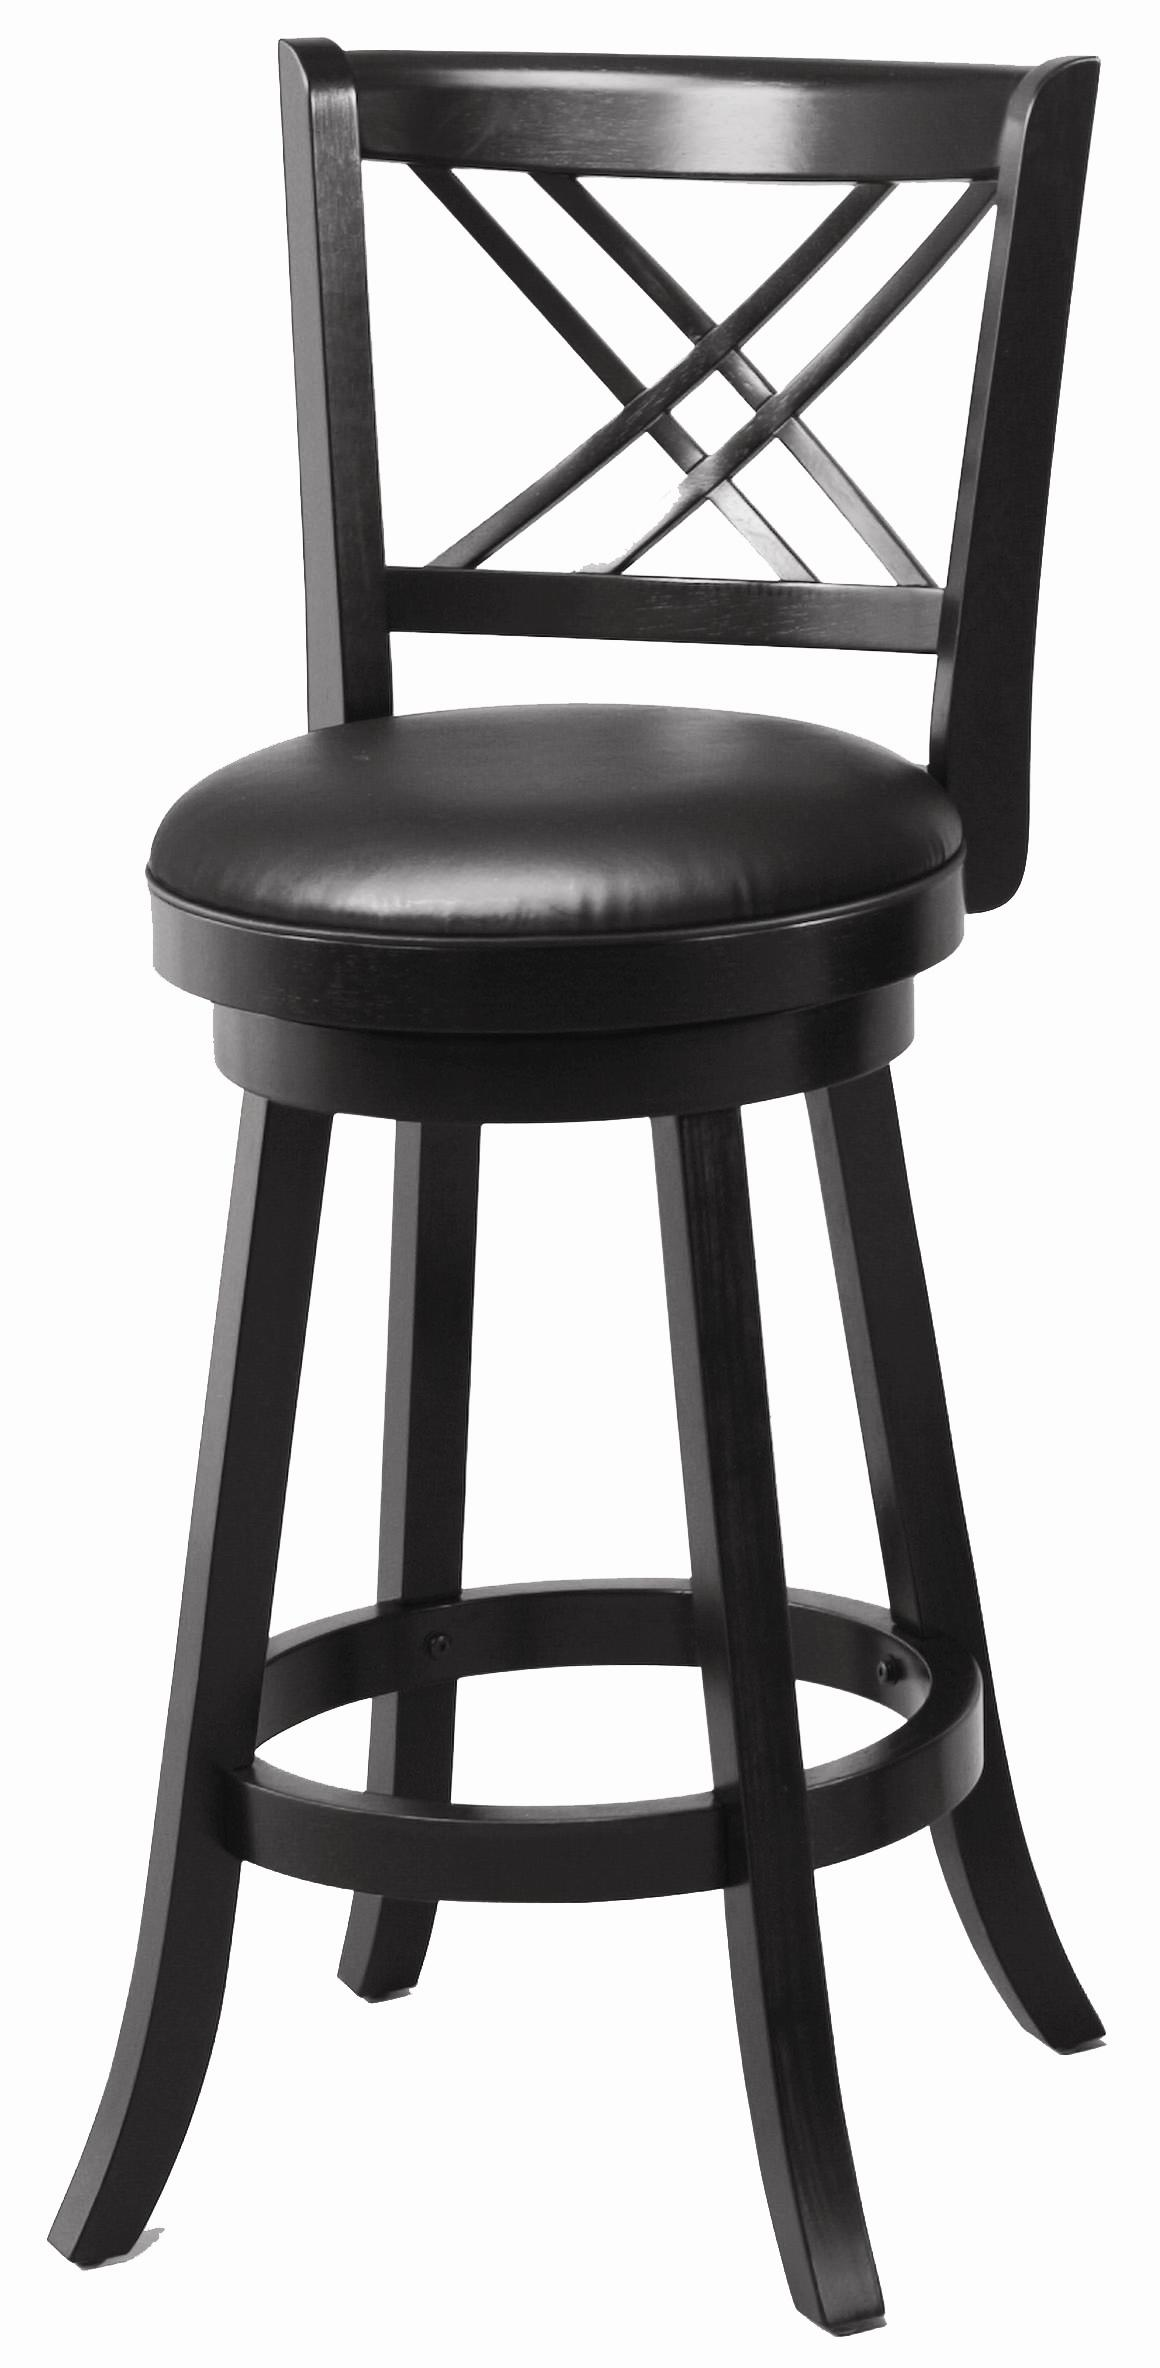 "Coaster Dining Chairs and Bar Stools 29"" Swivel Bar Stool with Upholstered Seat - Item Number: 101960"